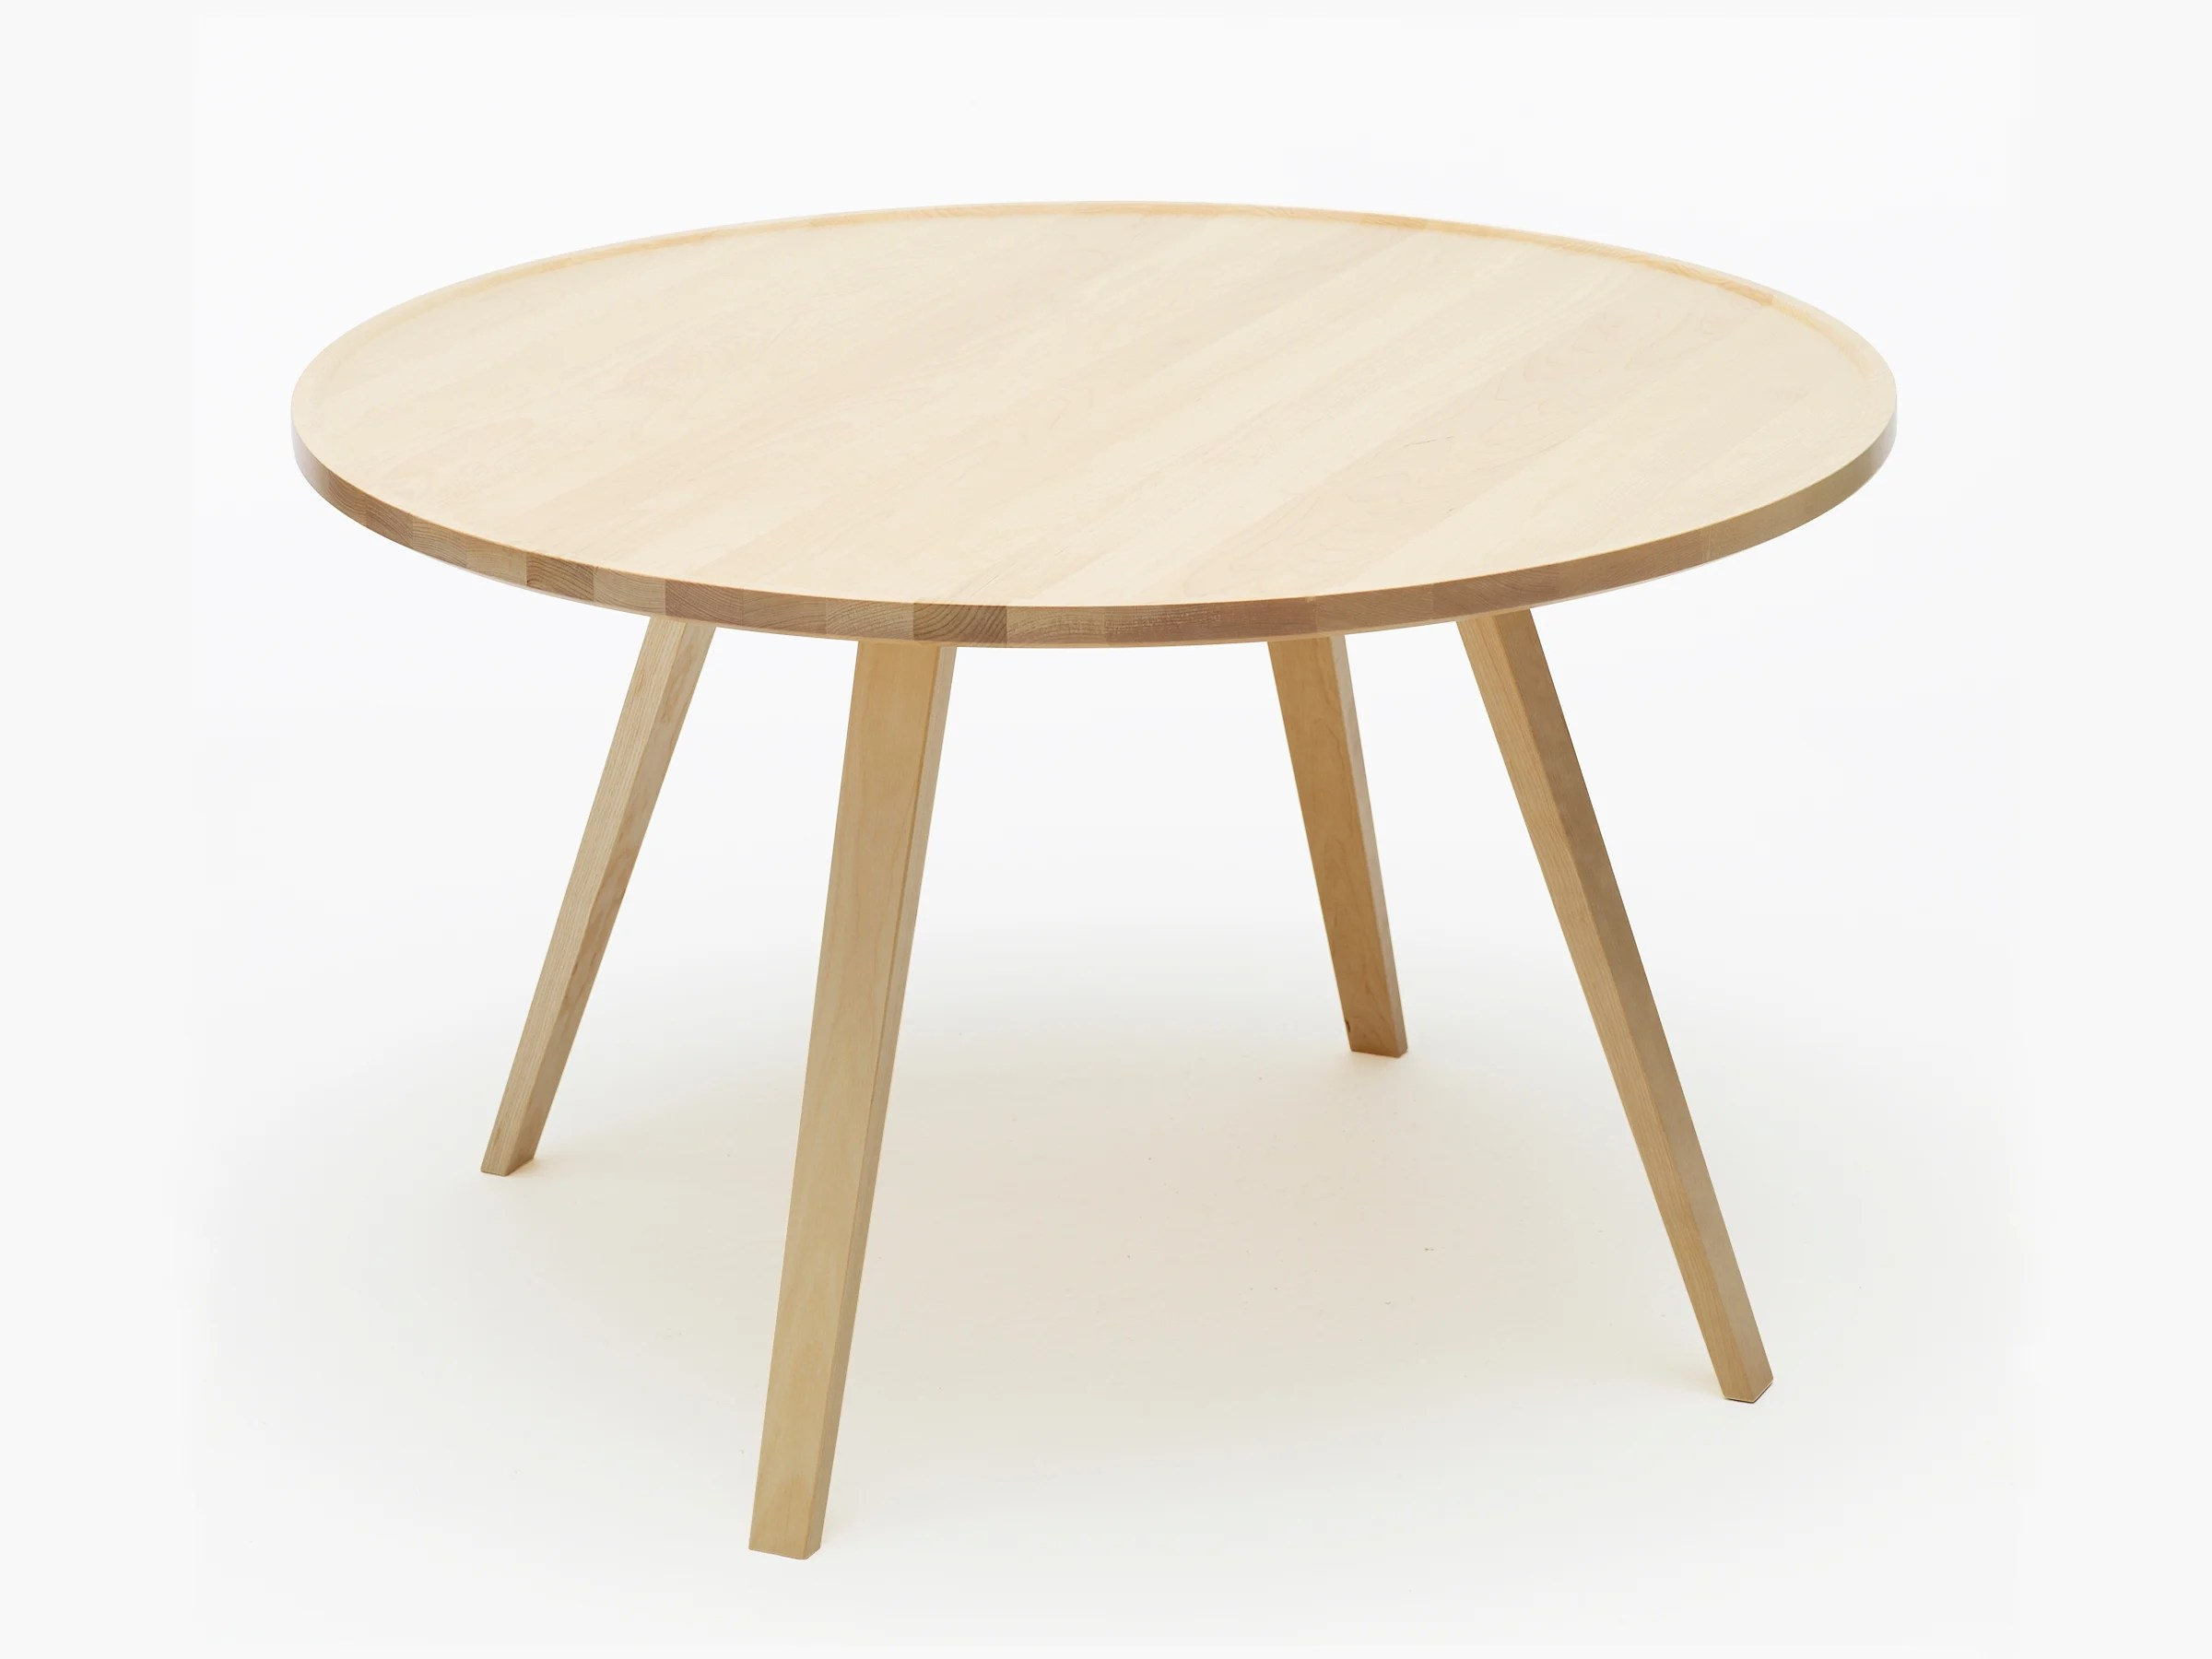 Table En Teck Ronde Table En Bois Ronde Lepetitsiam